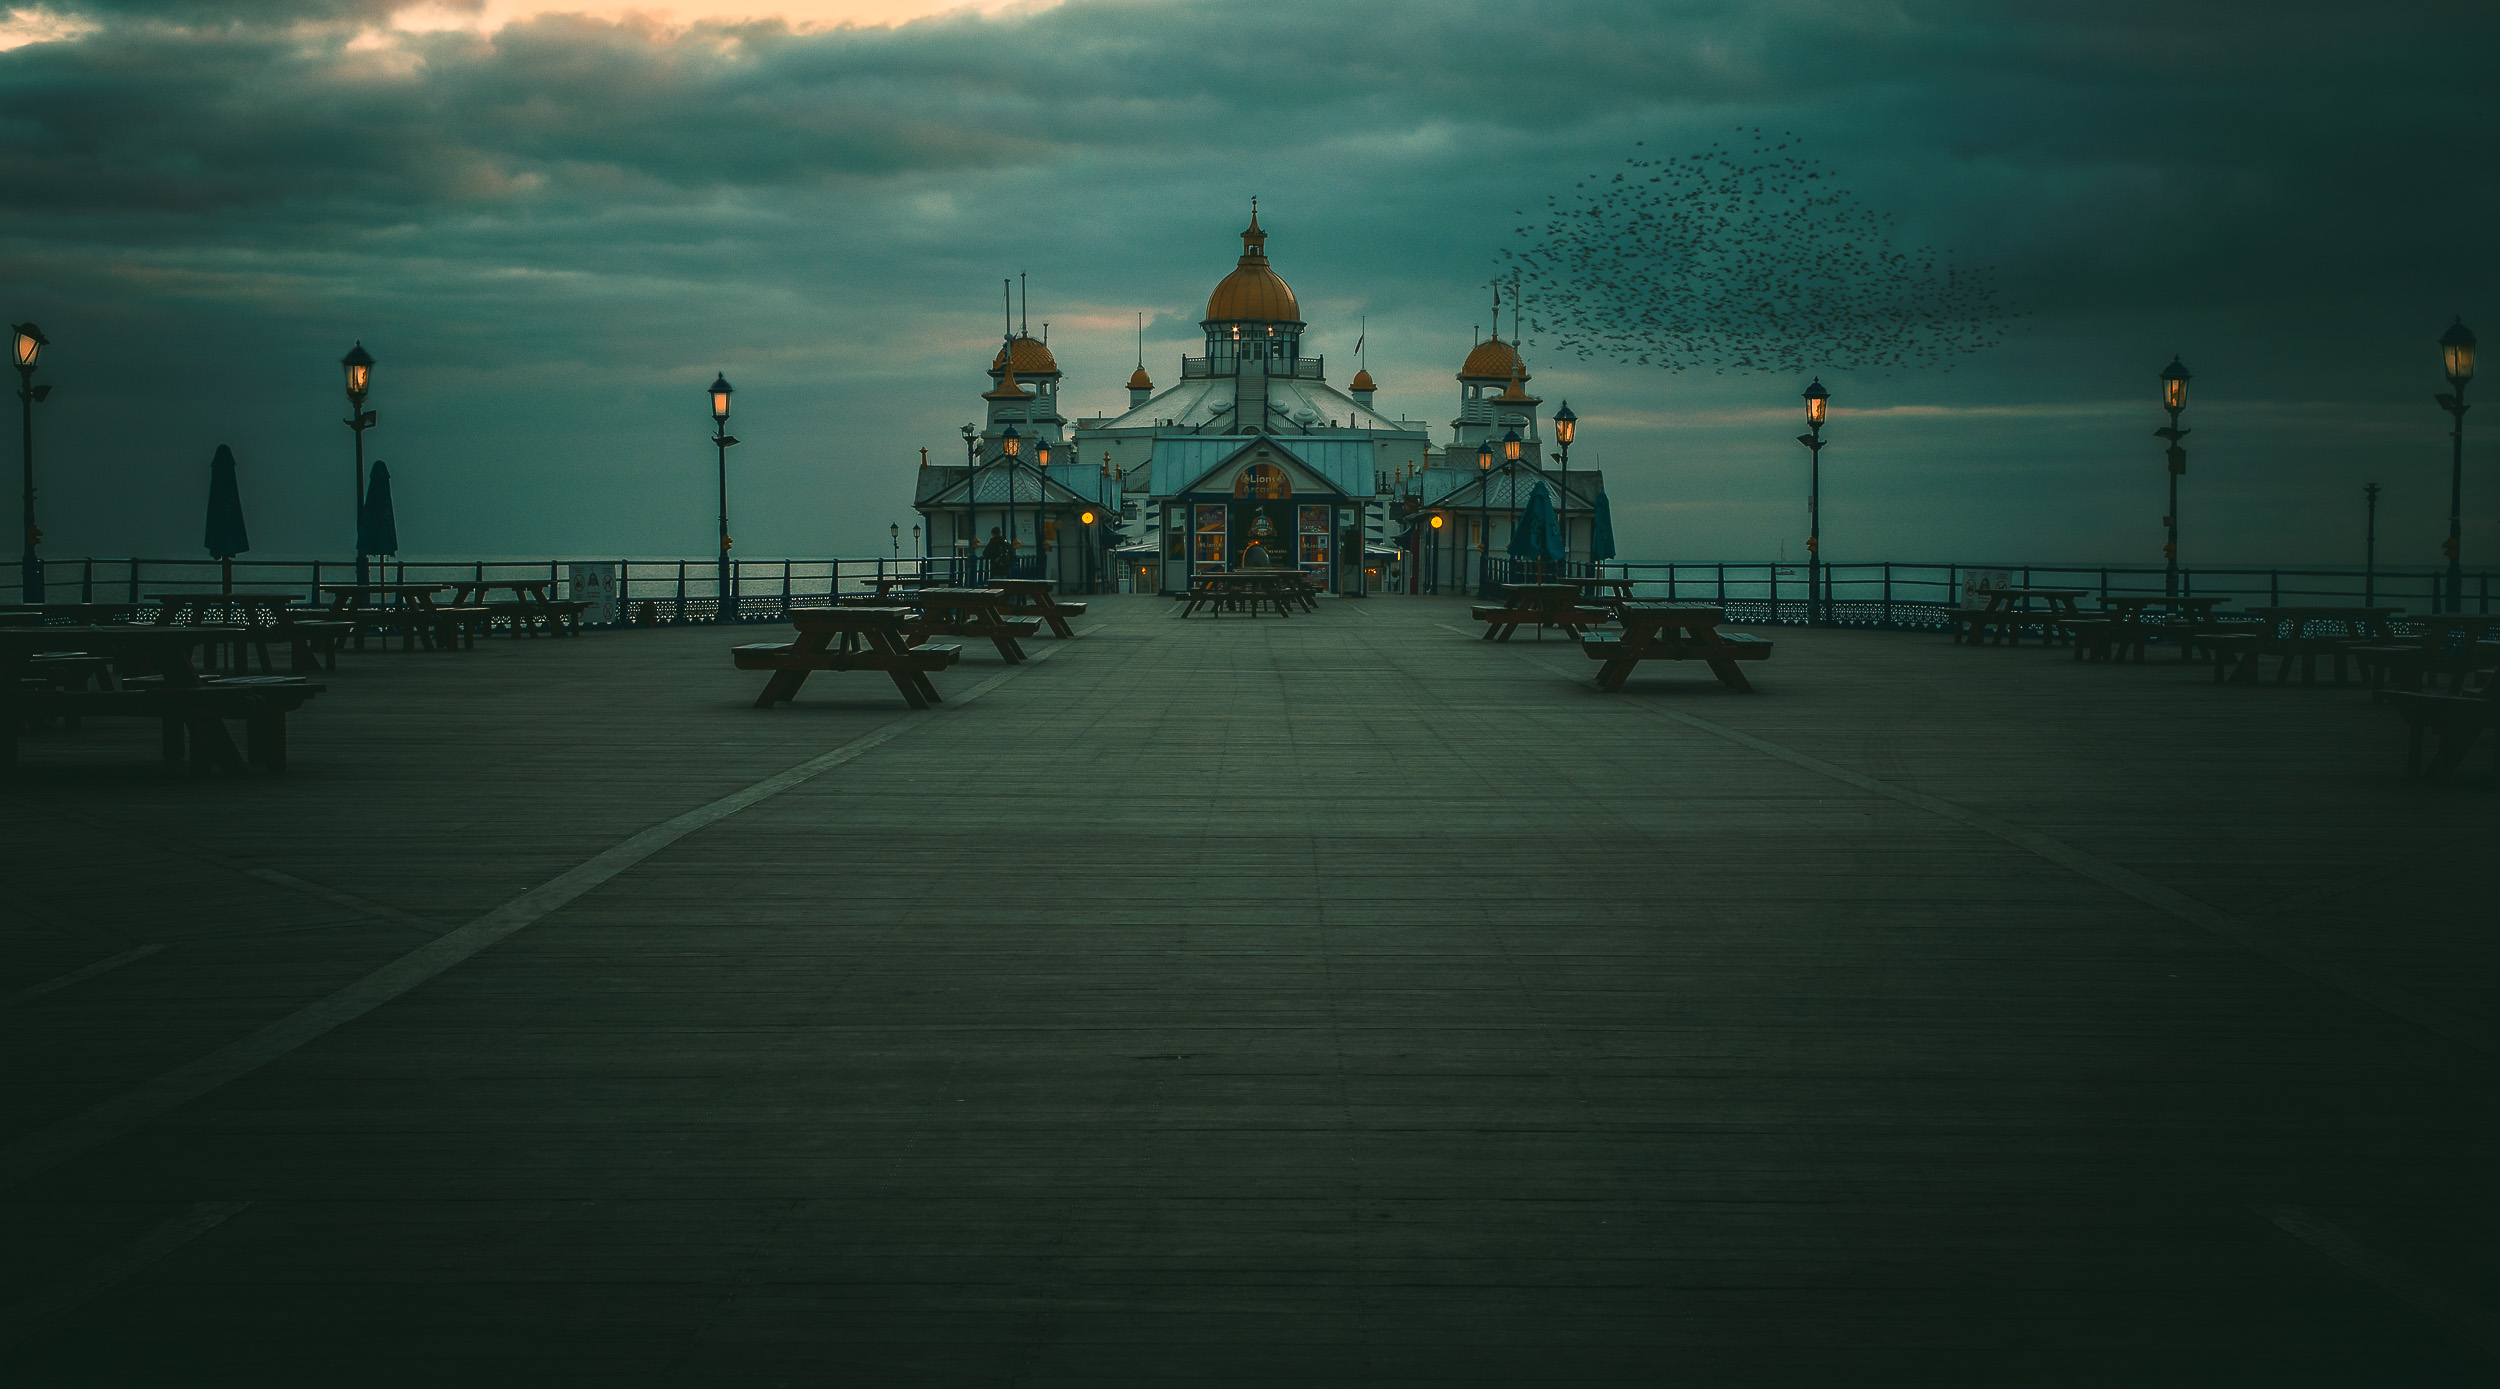 sussex-a-silent-night-on-eastbourne-pier.jpg